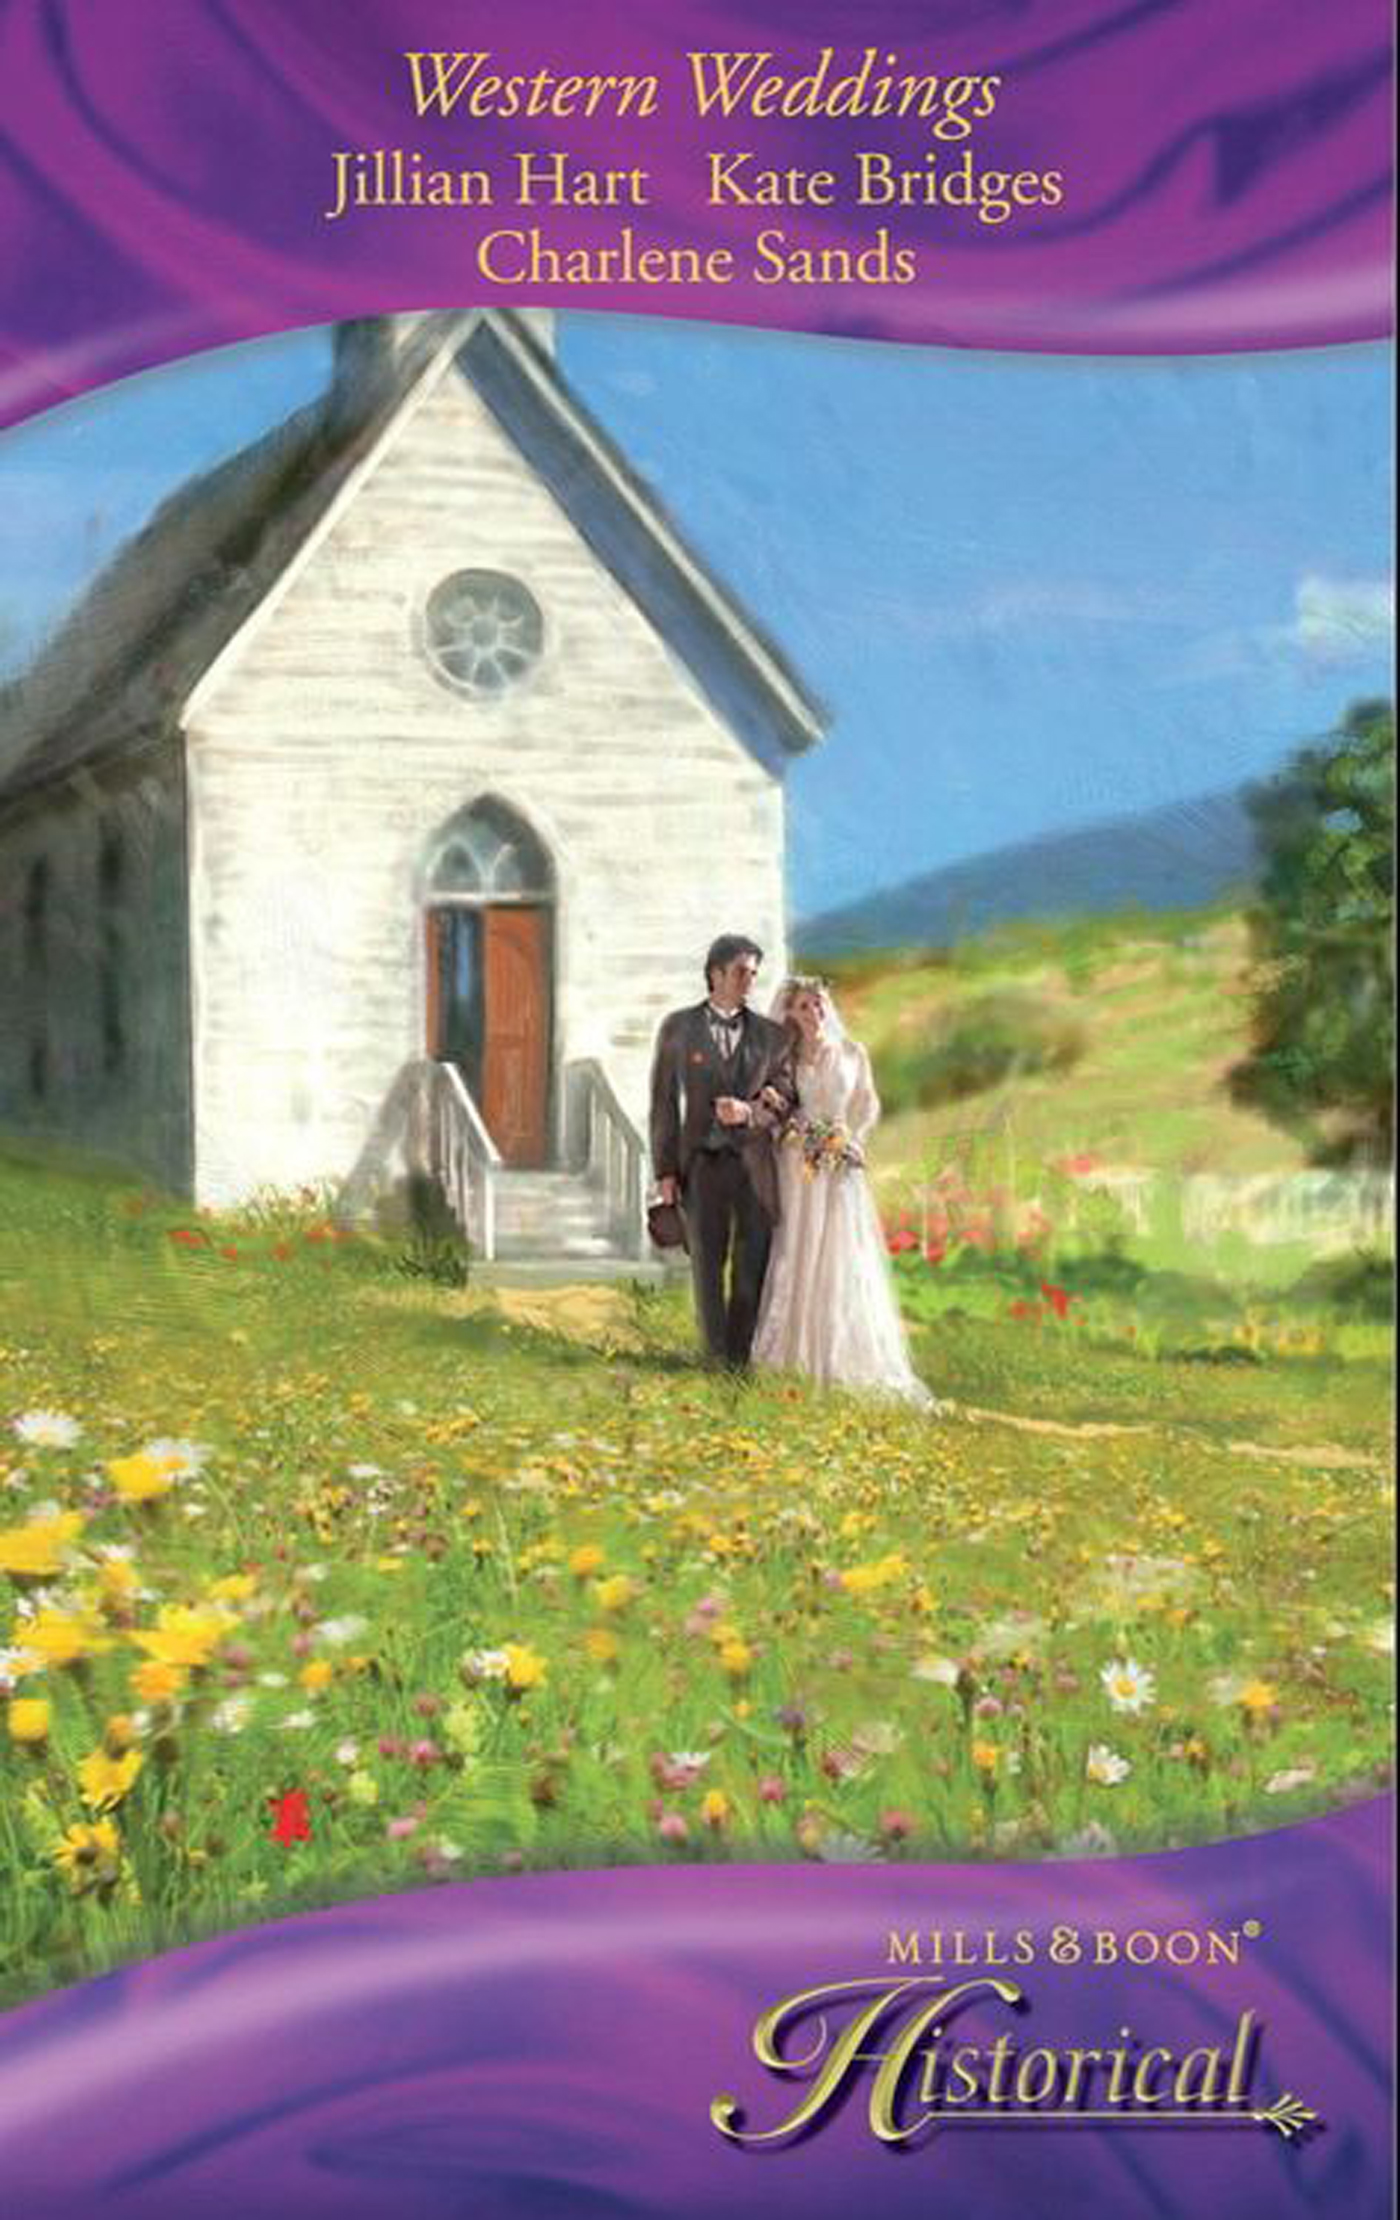 Western Weddings (Mills & Boon Historical)